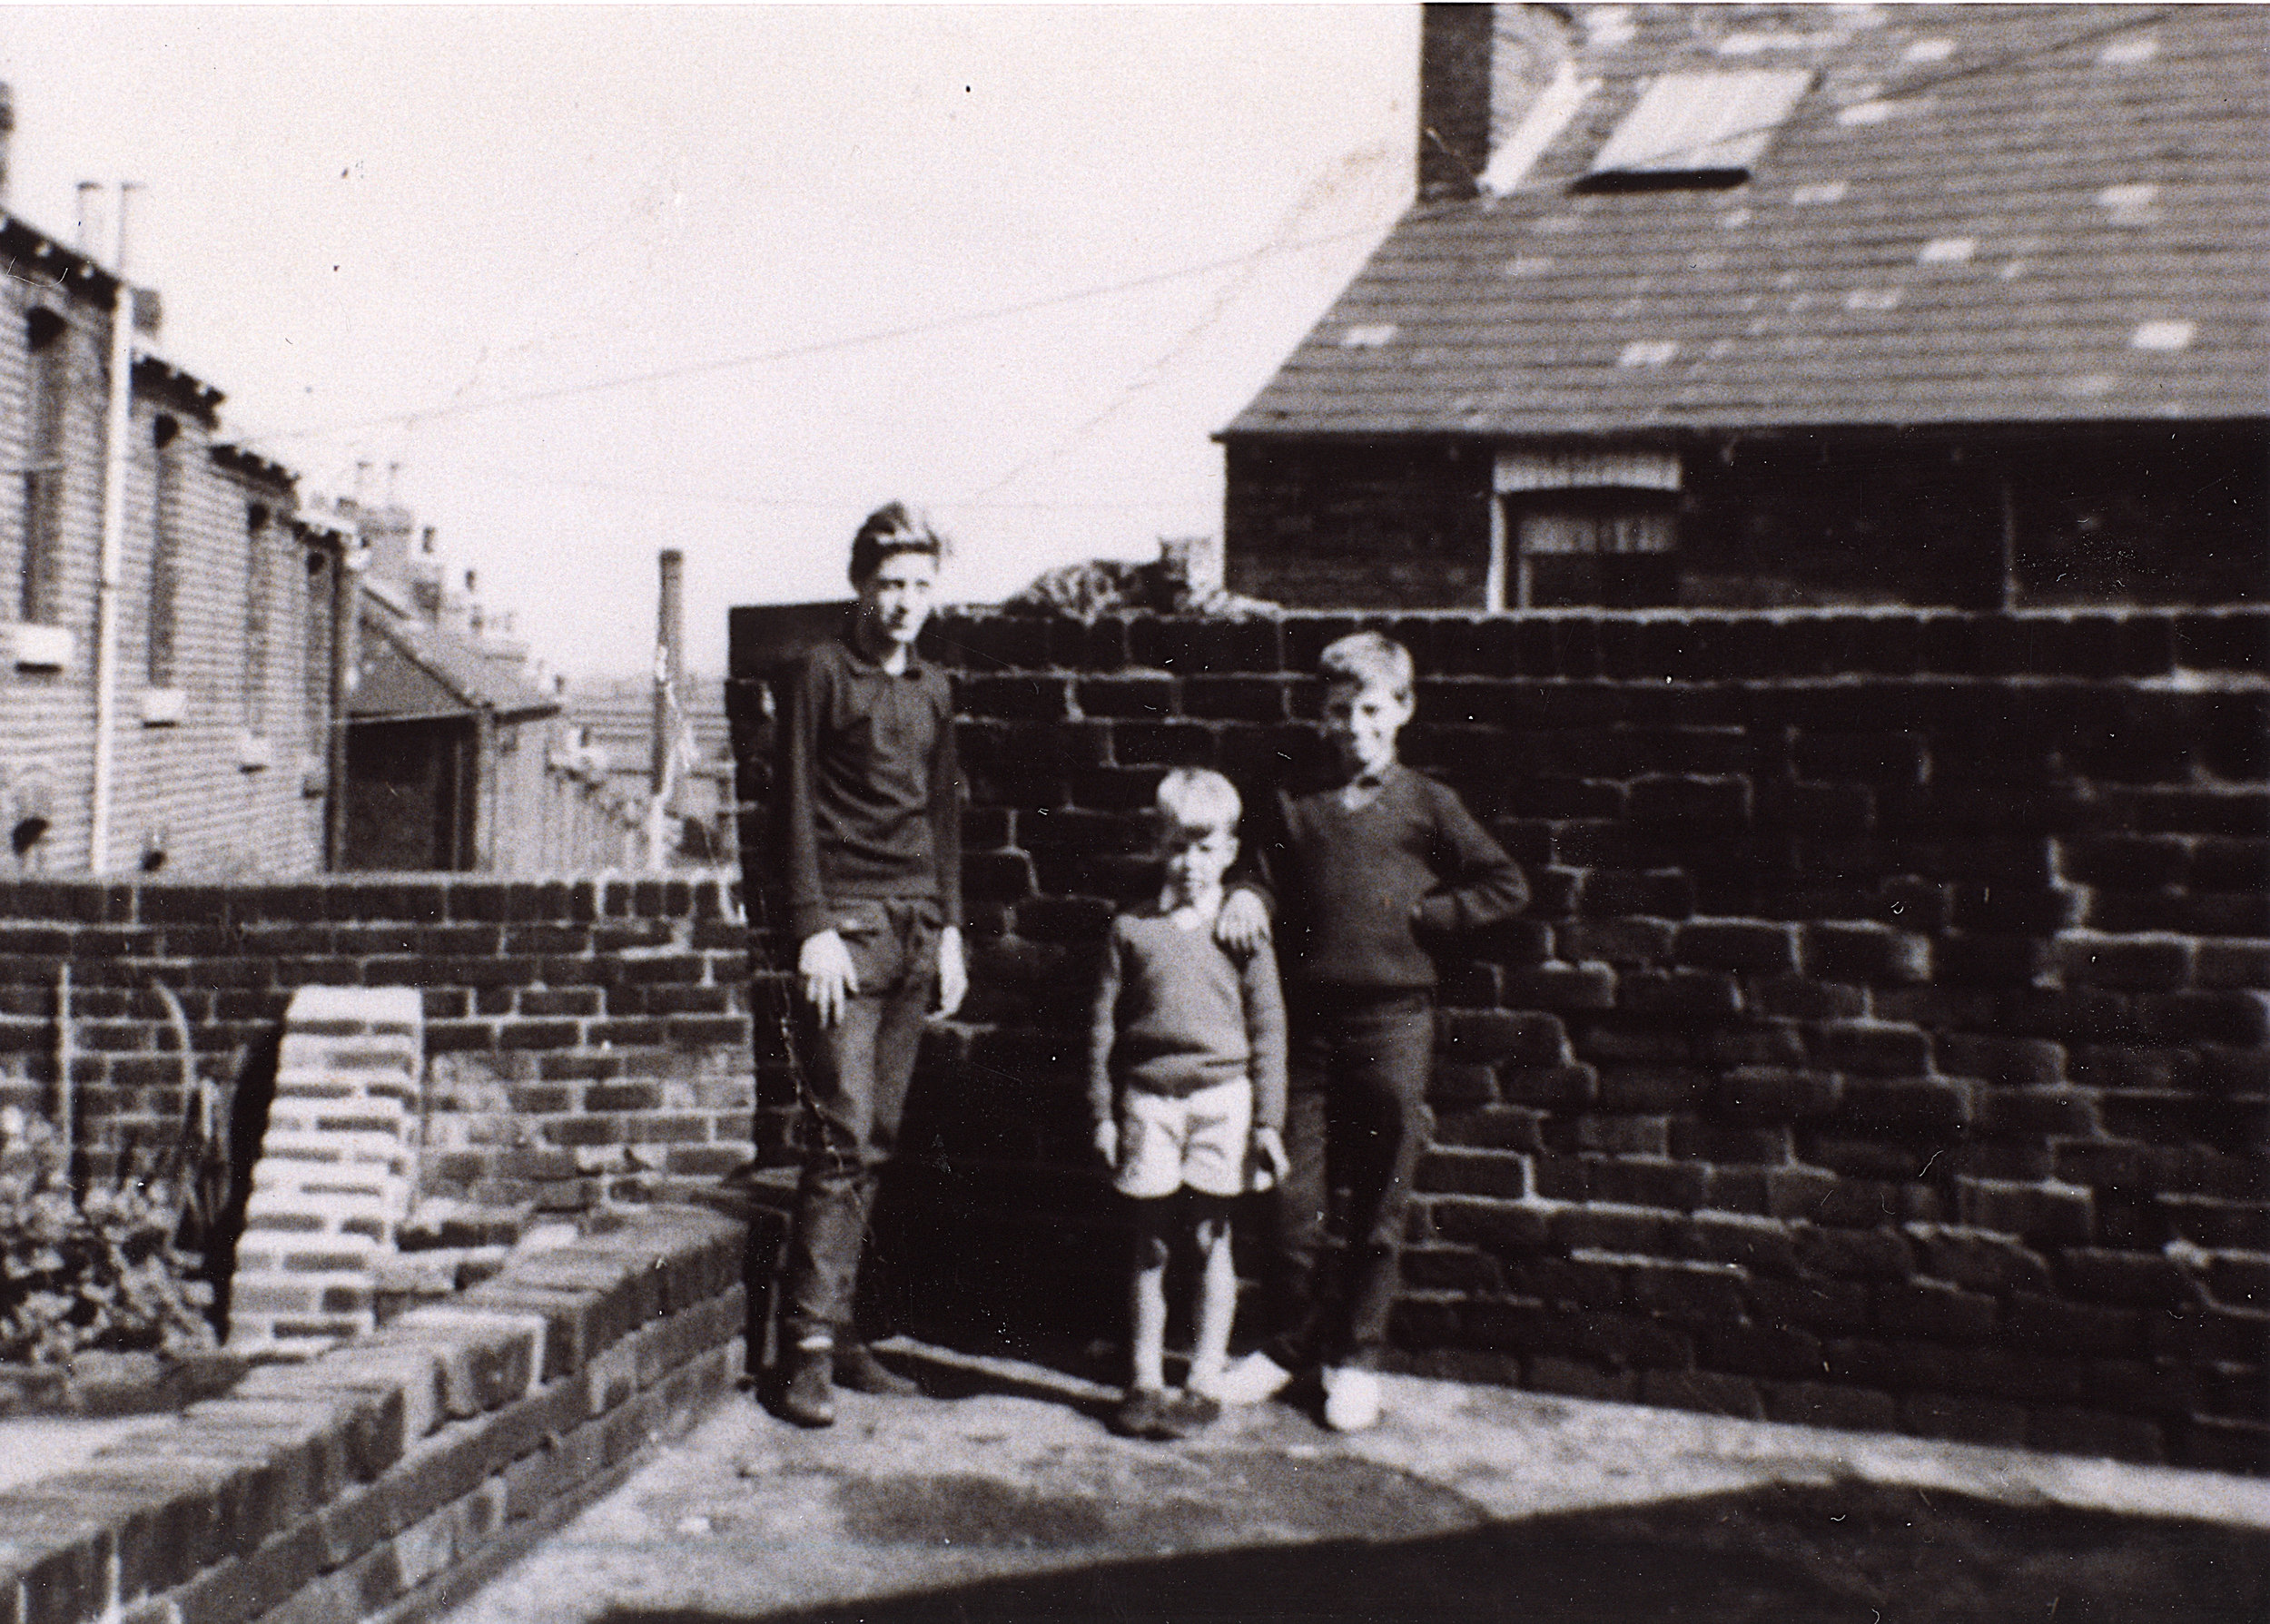 Our backyard in Sheffield— This was at 54 Lyons St, Pitsmoor, S4—about 50 years ago.